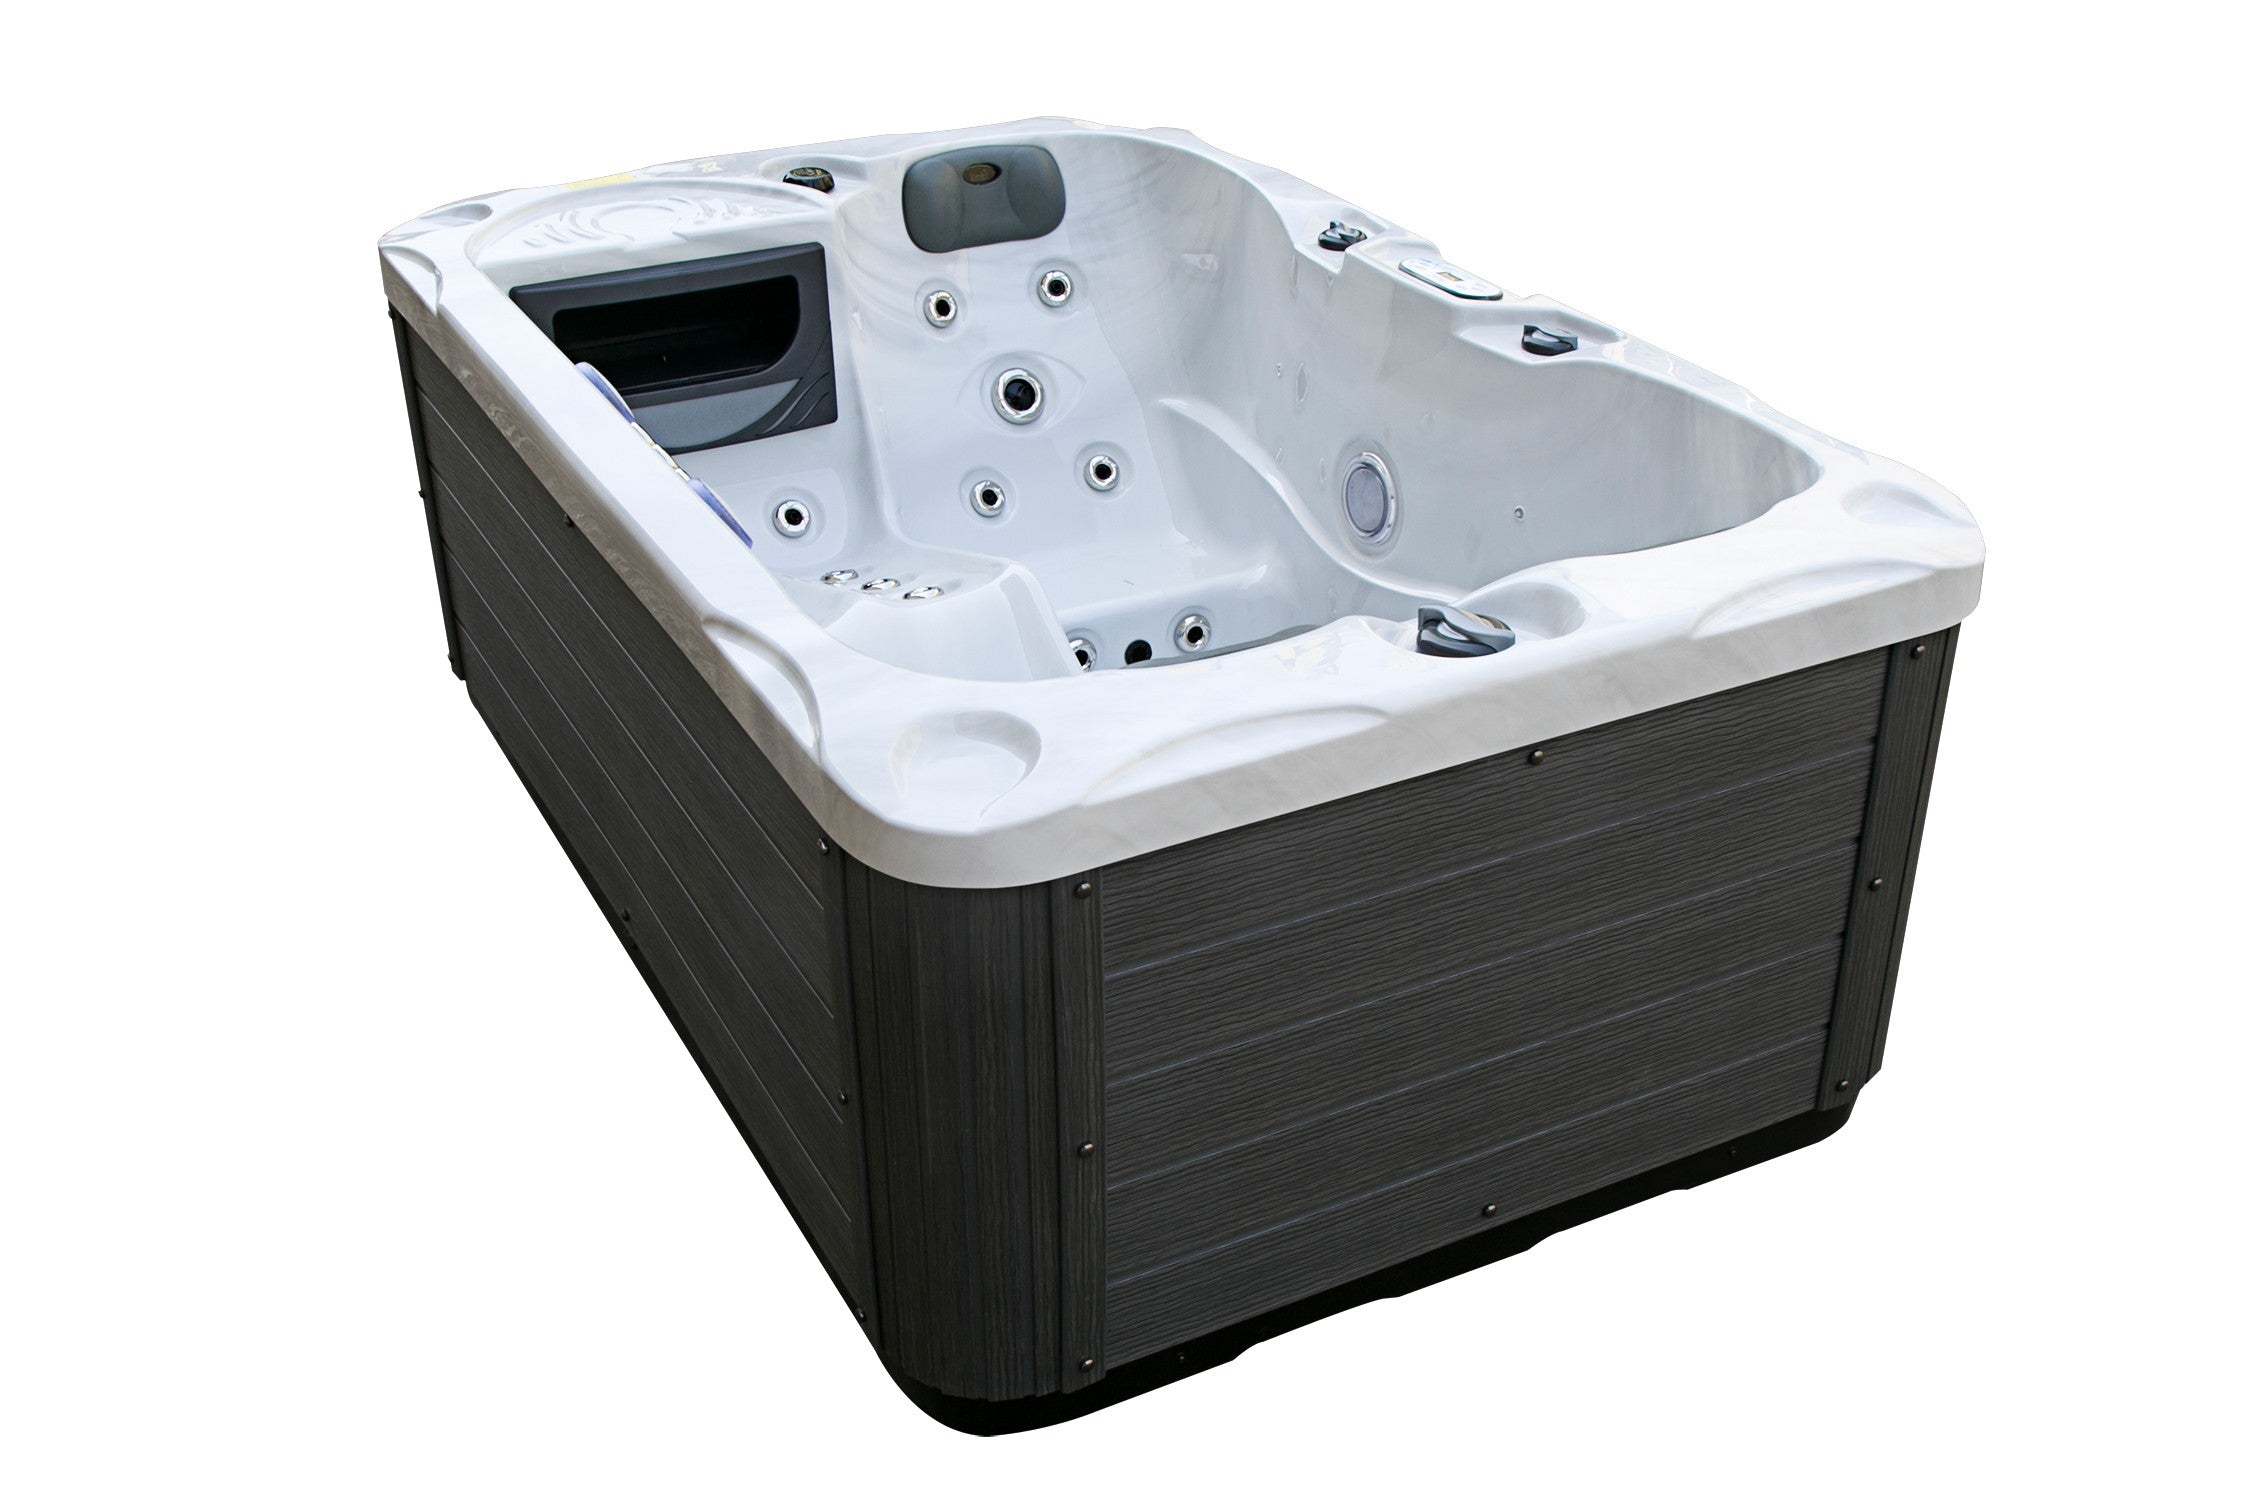 Sapphire Hot Tub Spa | 3 Person, 32 Jets